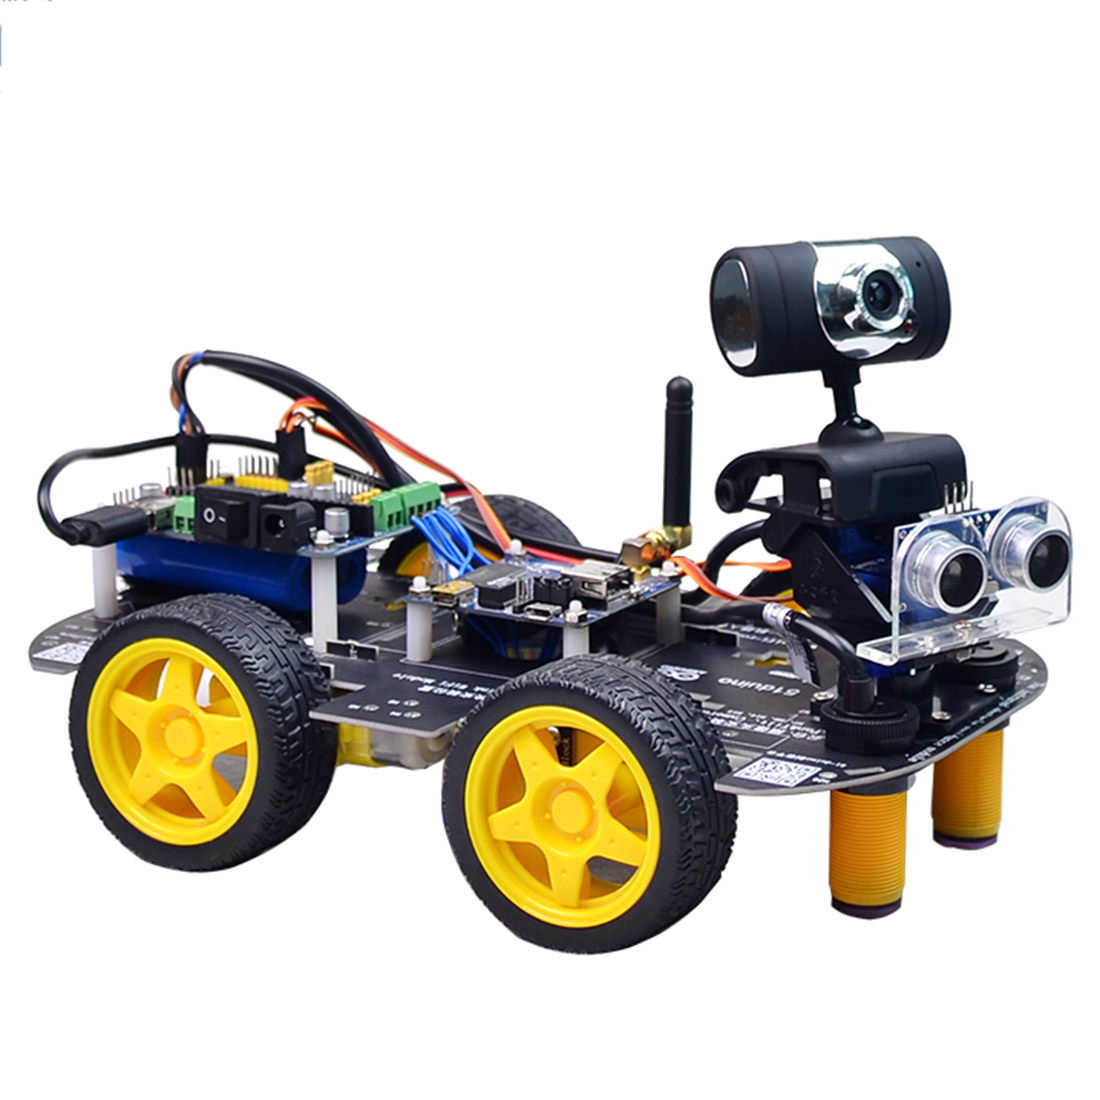 Programmable Robot DIY Wifi + Bluetooth Steam Educational Car With Graphic Programming XR BLOCK Linux For Arduino UNO R3(Line)